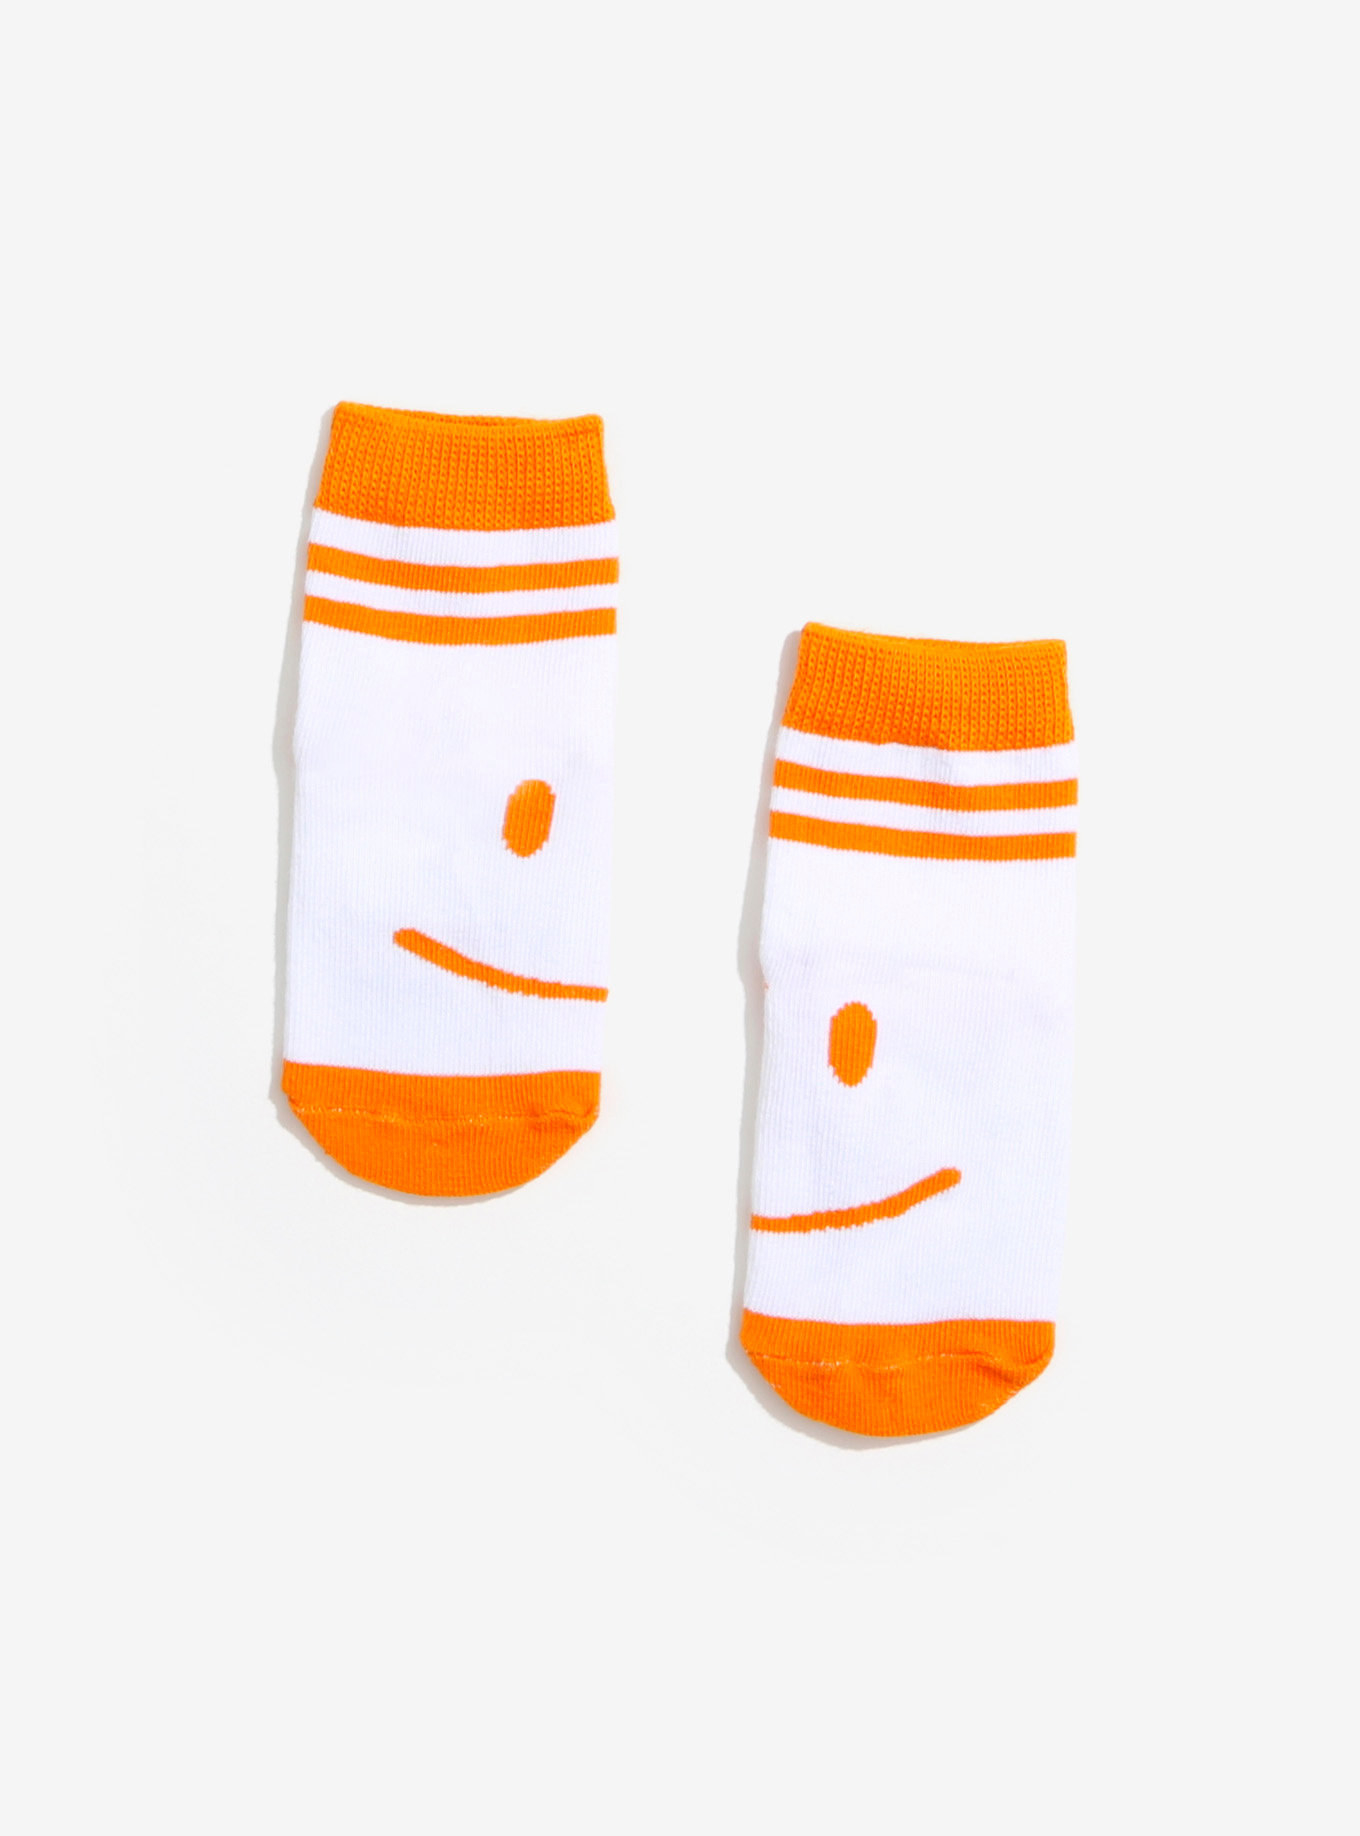 1 These Grippy Bottom Socks Because It Does And You Should Probably Be Ready To Change Their Diaper